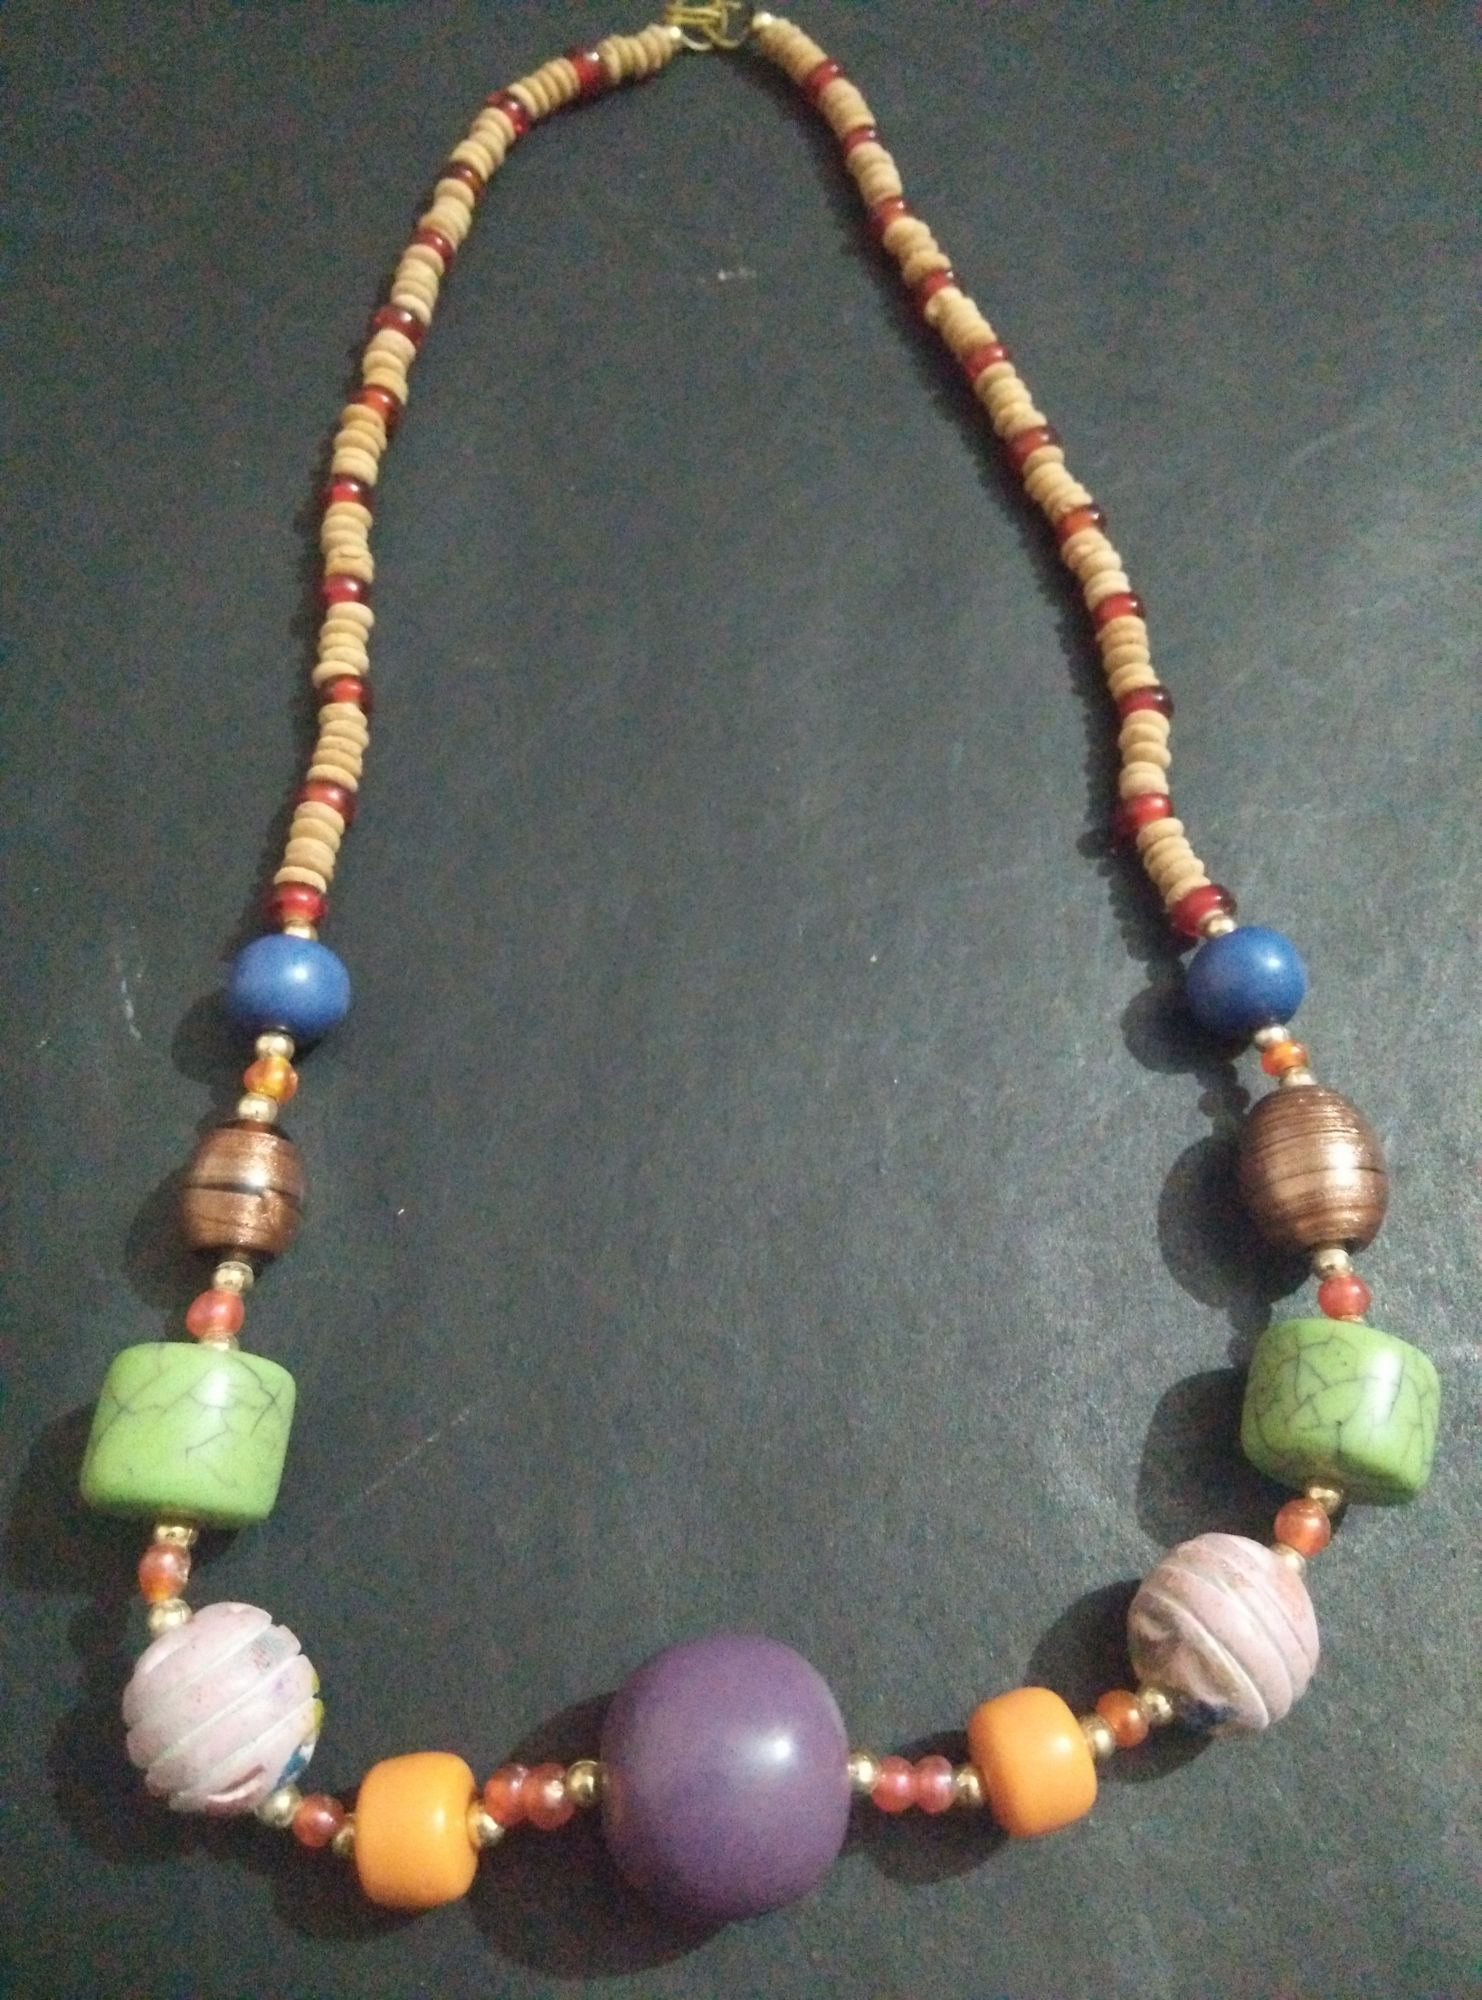 Designer Beads Necklace